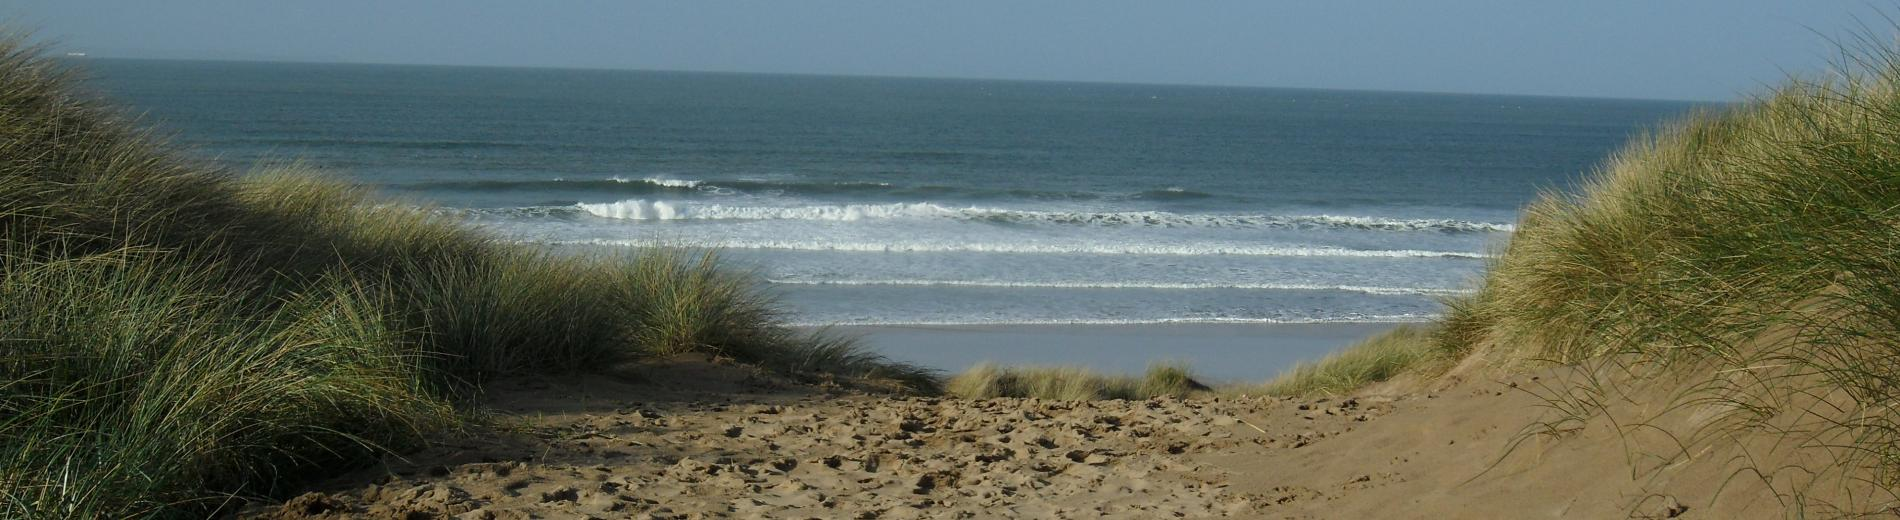 Entrance to Woolacombe Beach